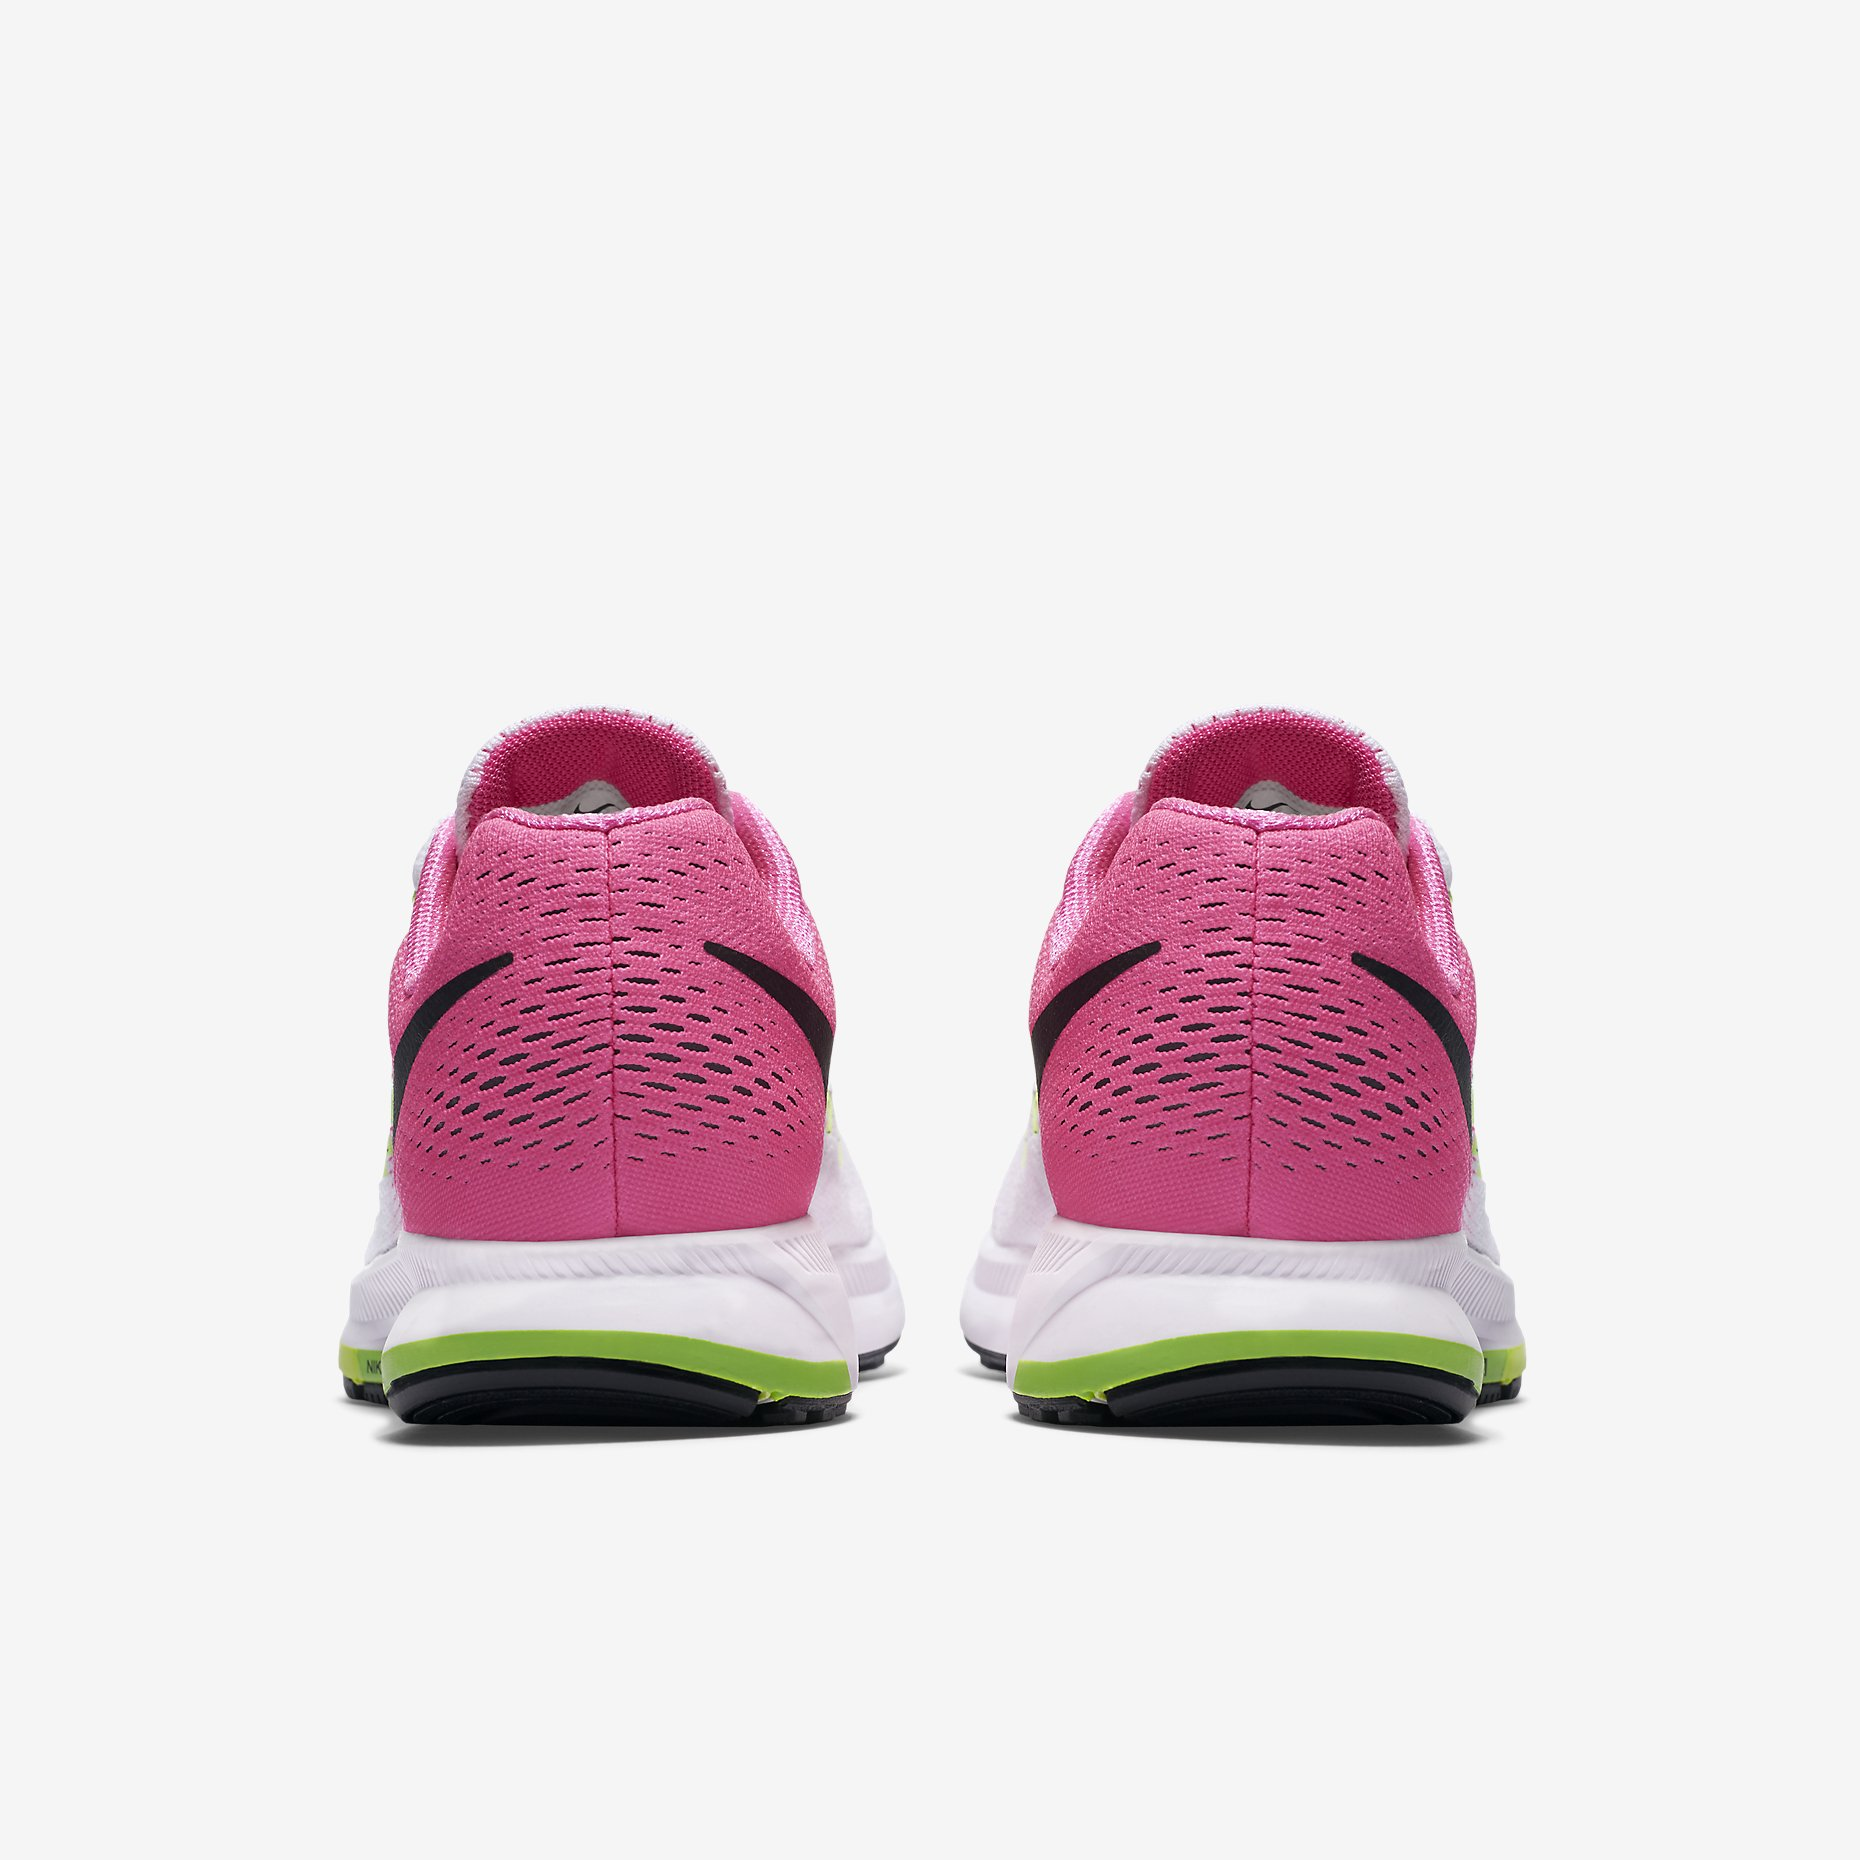 7d2c4ea07596 ... dark iris metallic silver purple dynasty green glow summit white volt  kids running shoes c11e9 d9394  canada nike air zoom pegasus 33 66155 8efcd